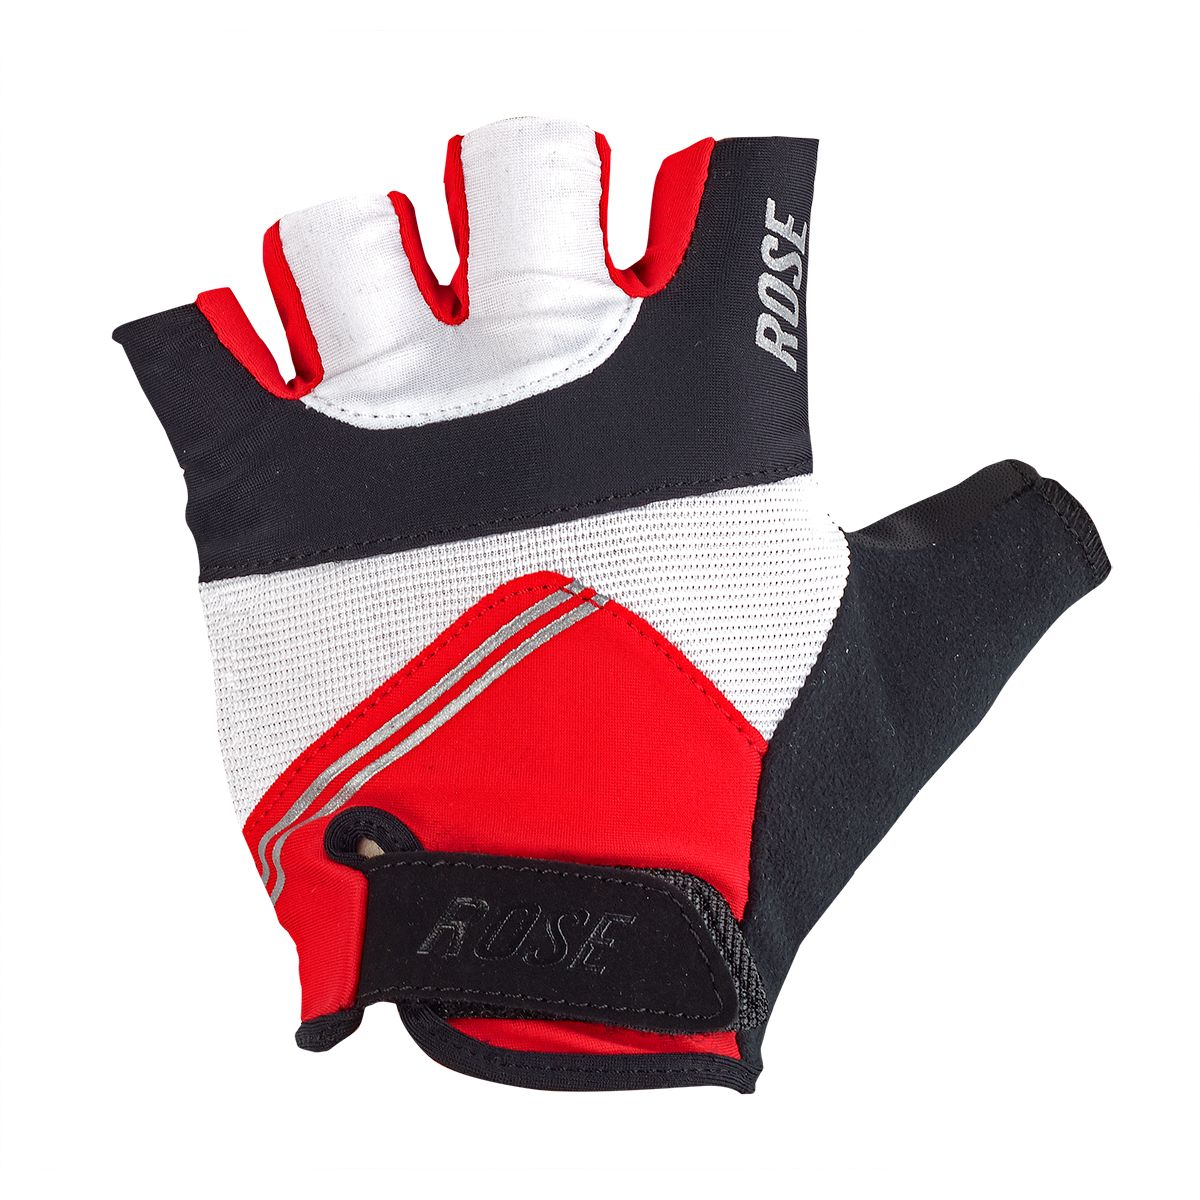 ROSE RSH GEL 05 gloves | Handsker